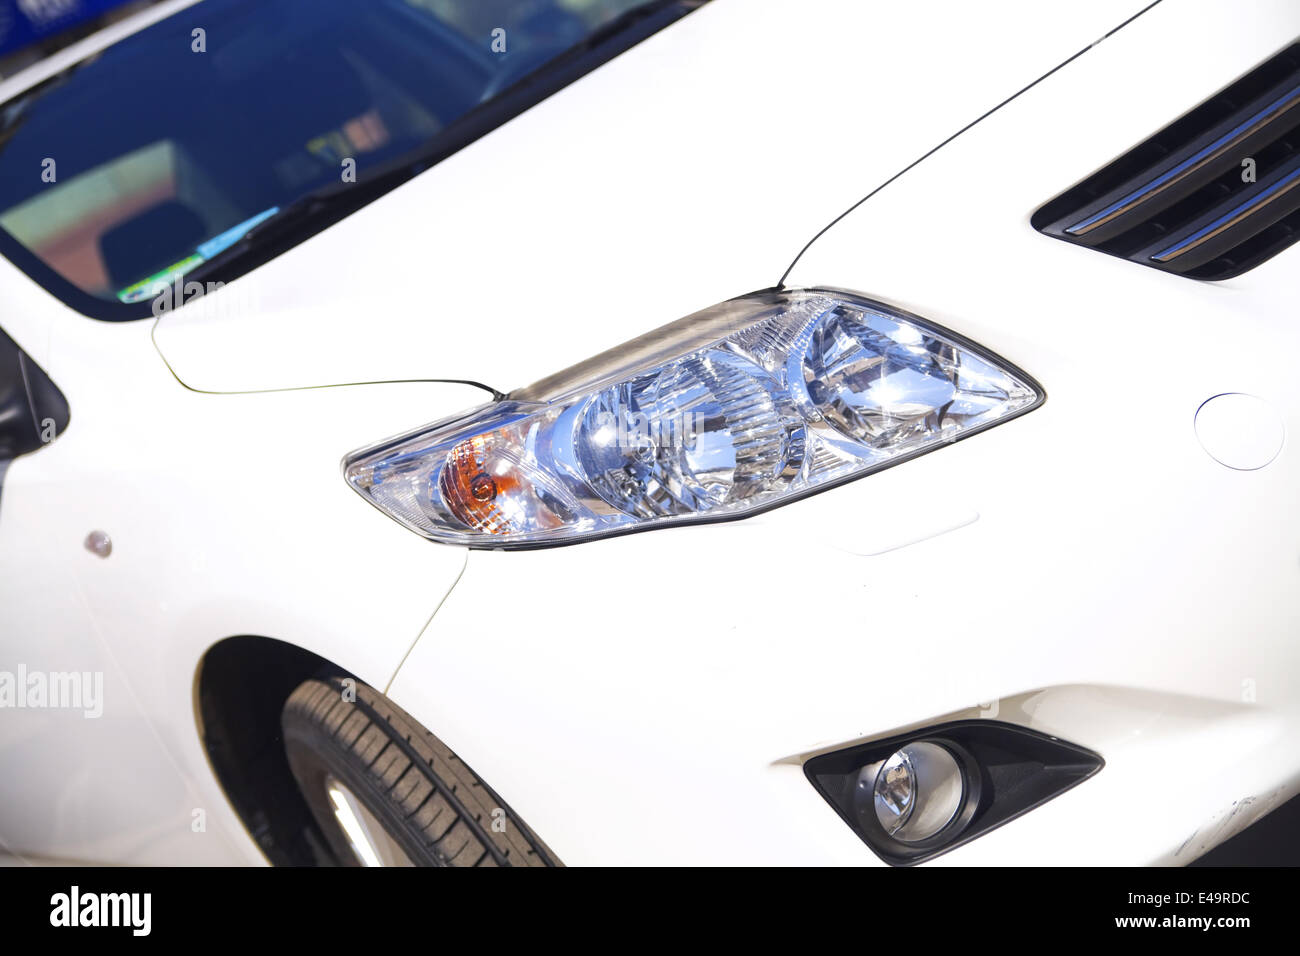 front view of modern white passenger car - Stock Image